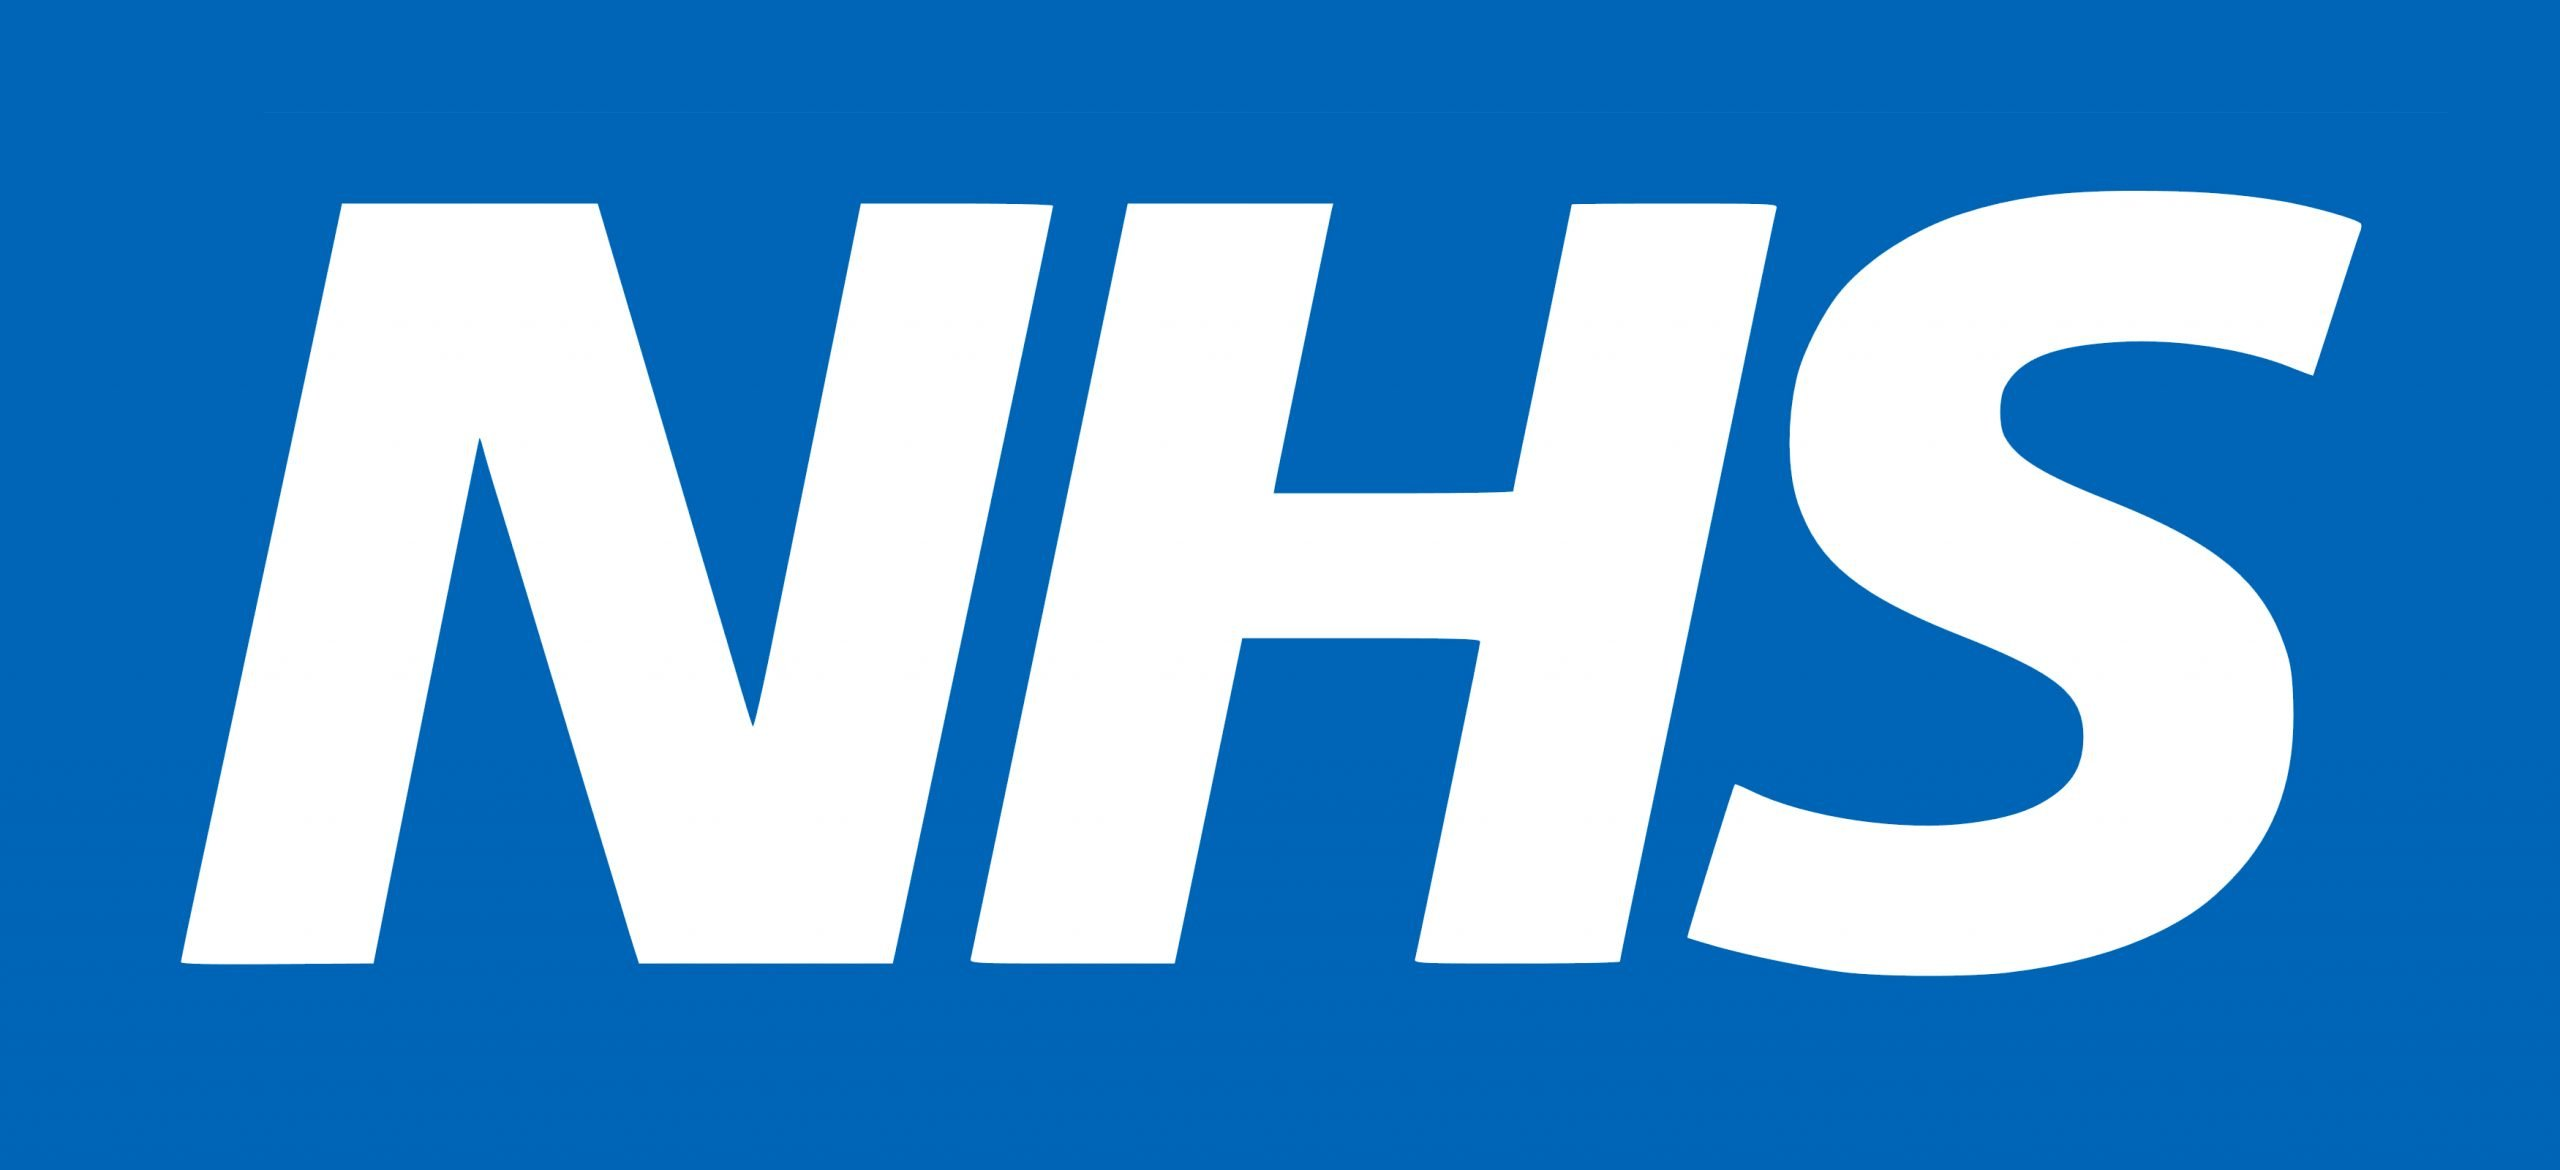 image of NHS colour logo